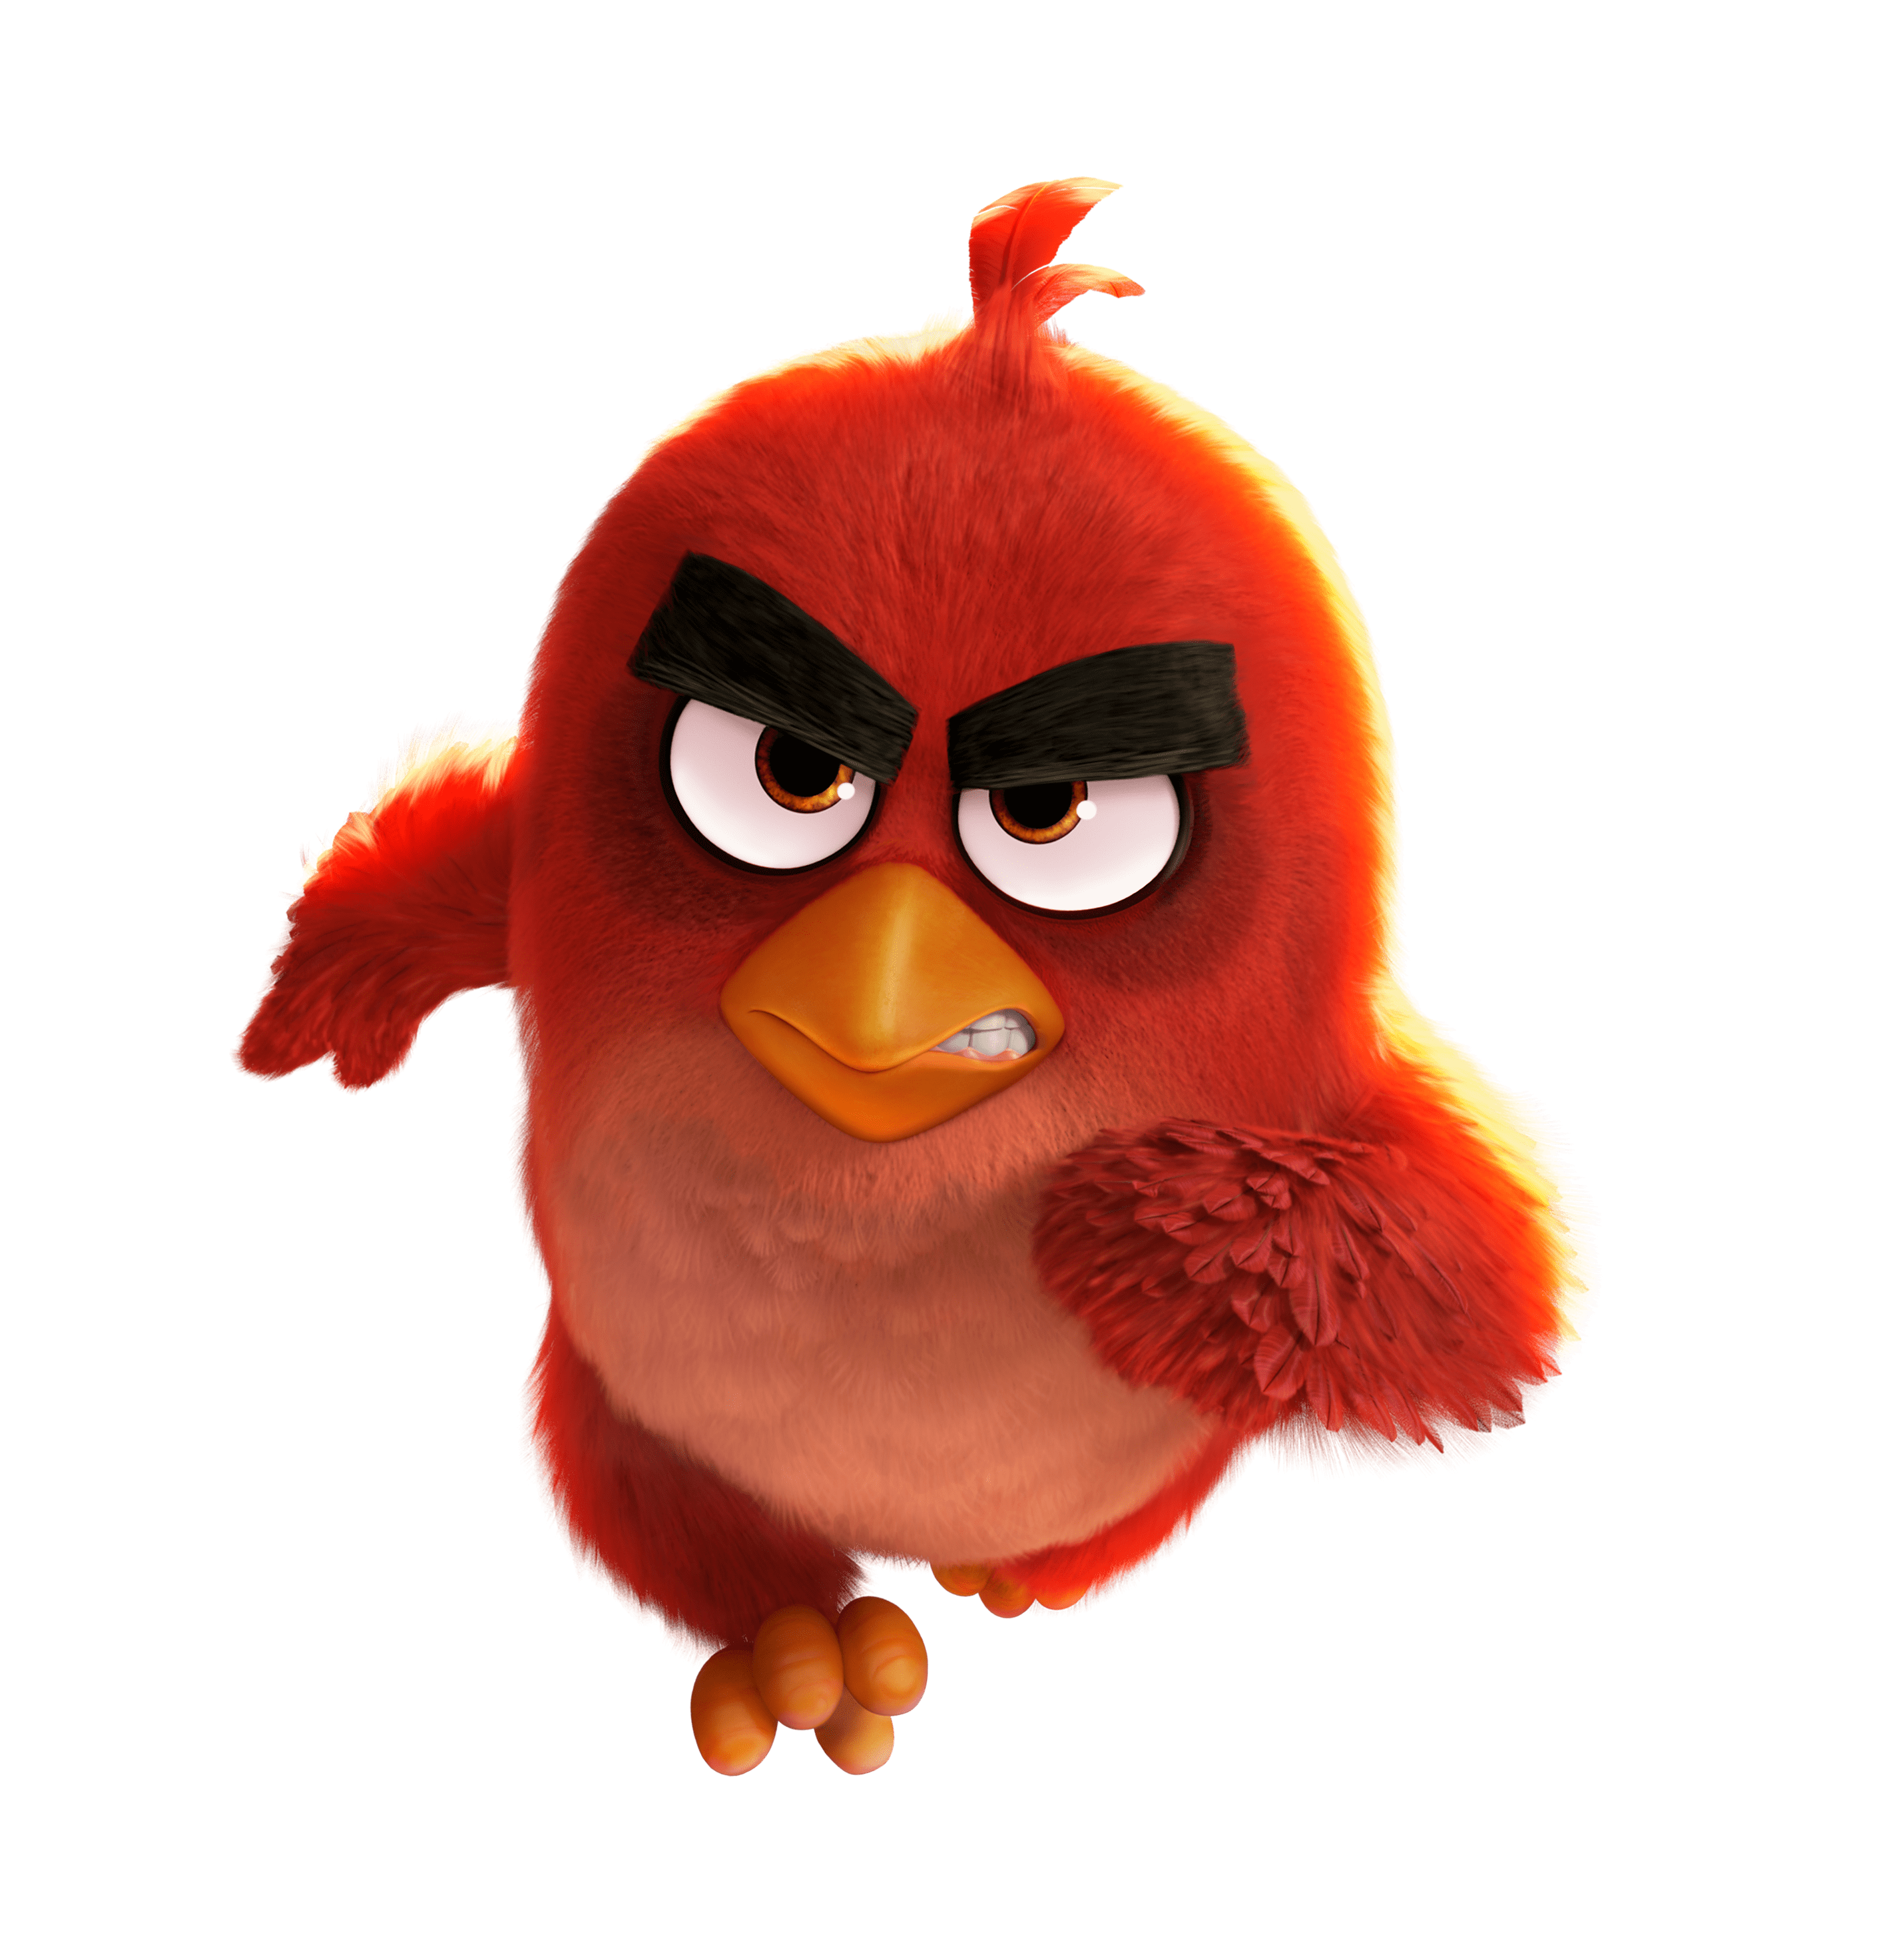 Red bird png. Angry birds movie running